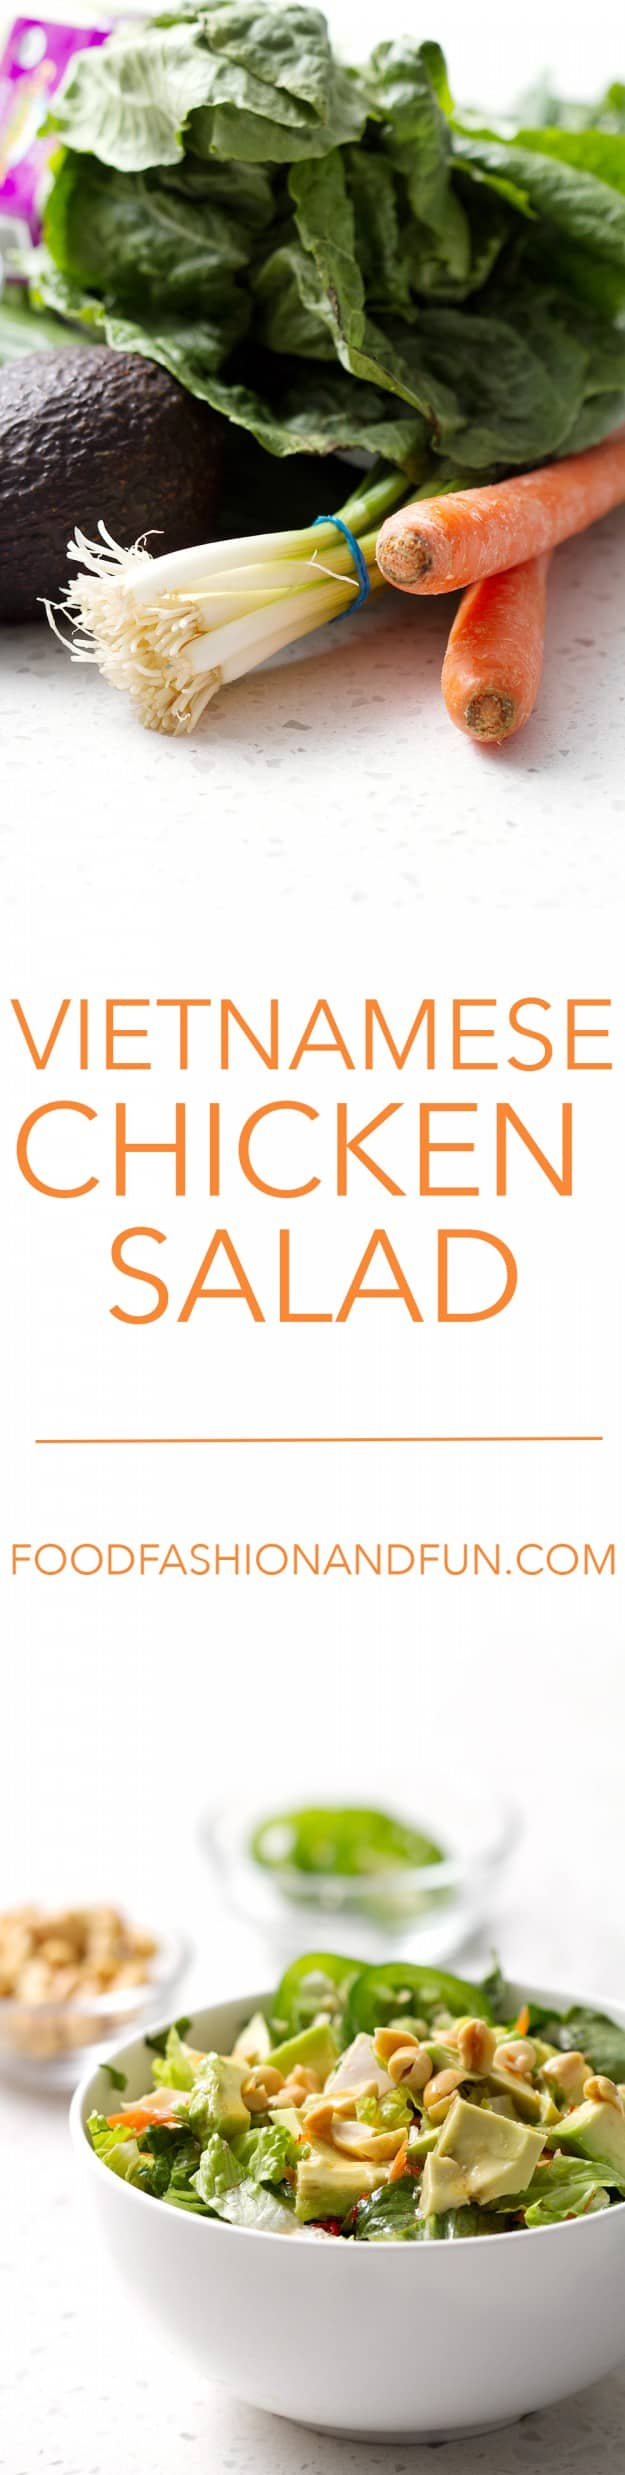 Vietnamese Chopped Chicken Salad